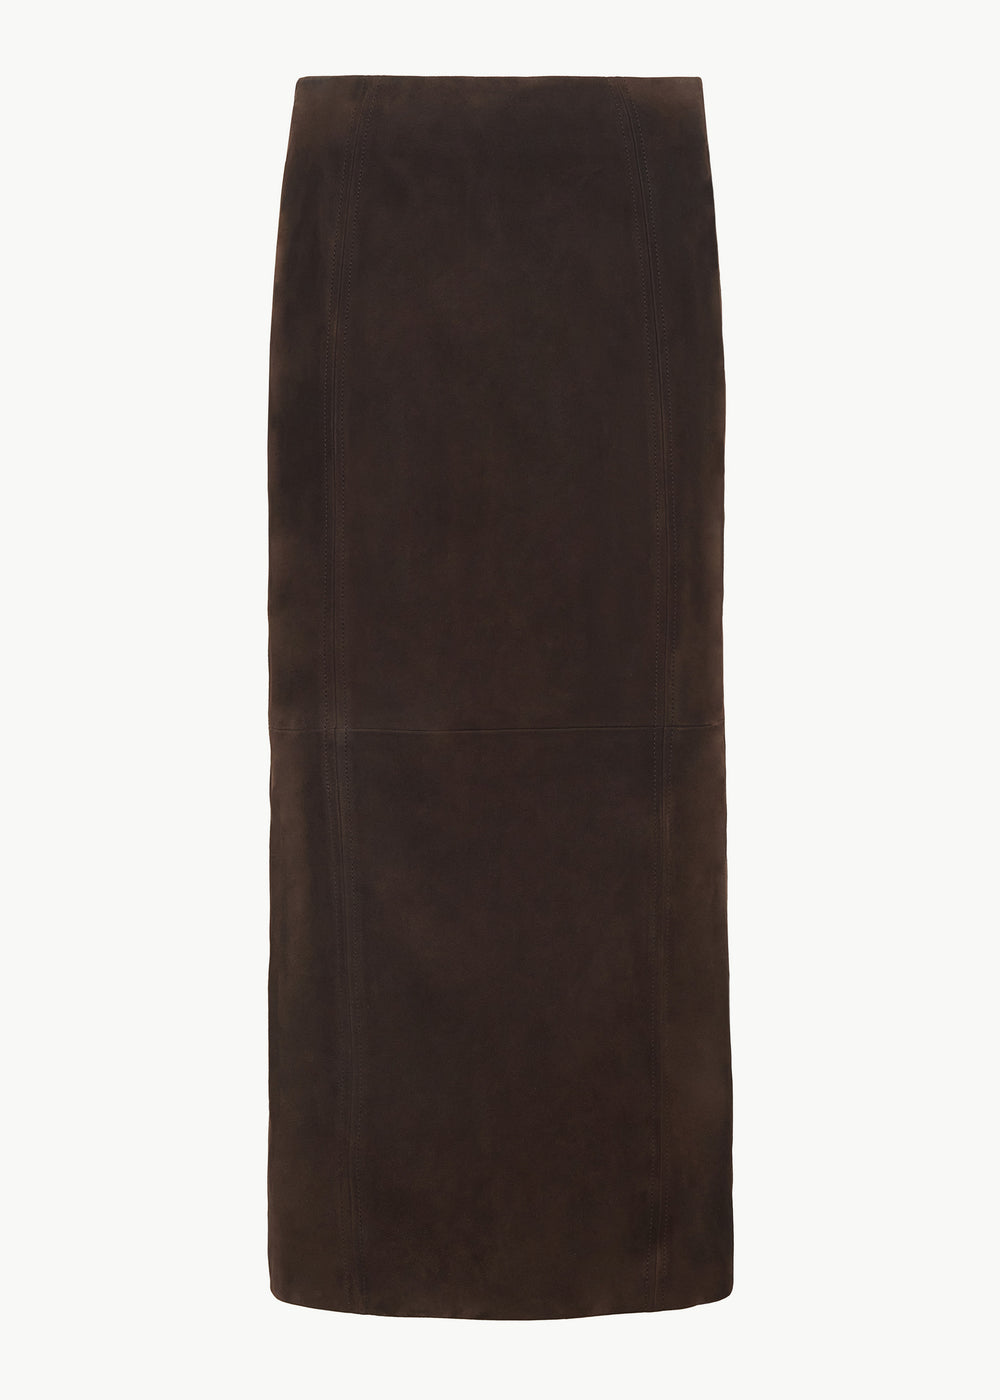 Pencil Skirt in Suede - Brown - CO